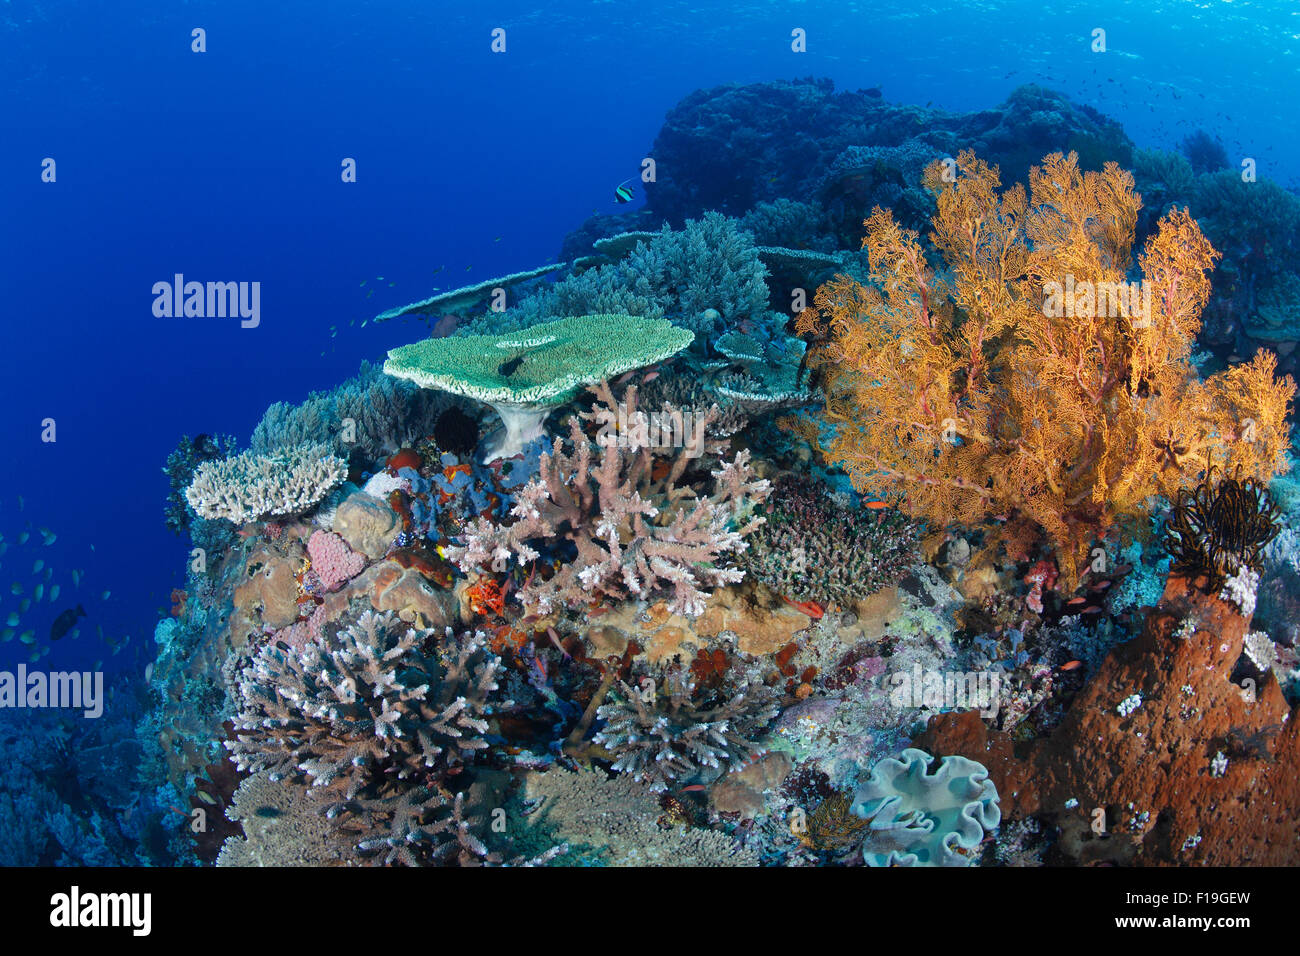 px0297-D.  healthy coral reef, with a variety of hard corals, soft corals, and sponges. Indonesia, tropical Pacific - Stock Image